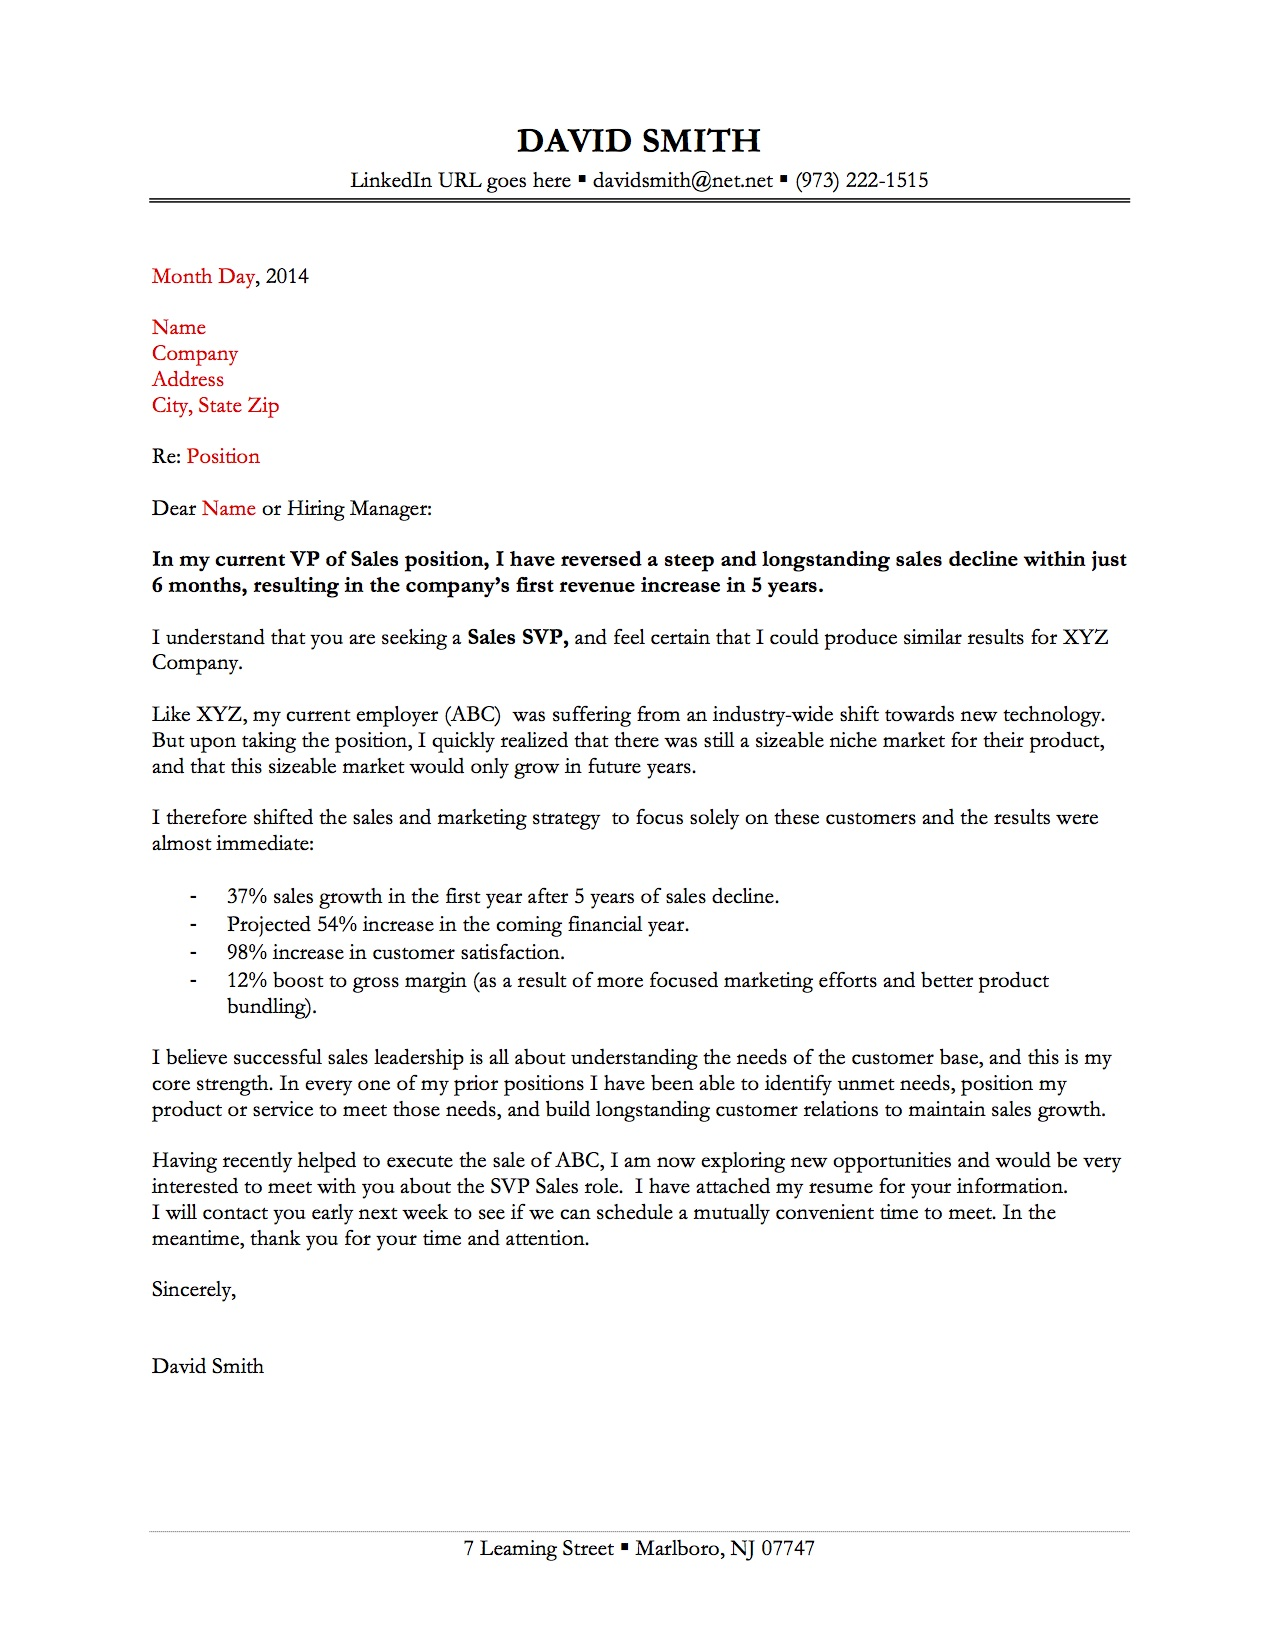 Sample Cover Letter 2  Great Cover Letters For Resumes